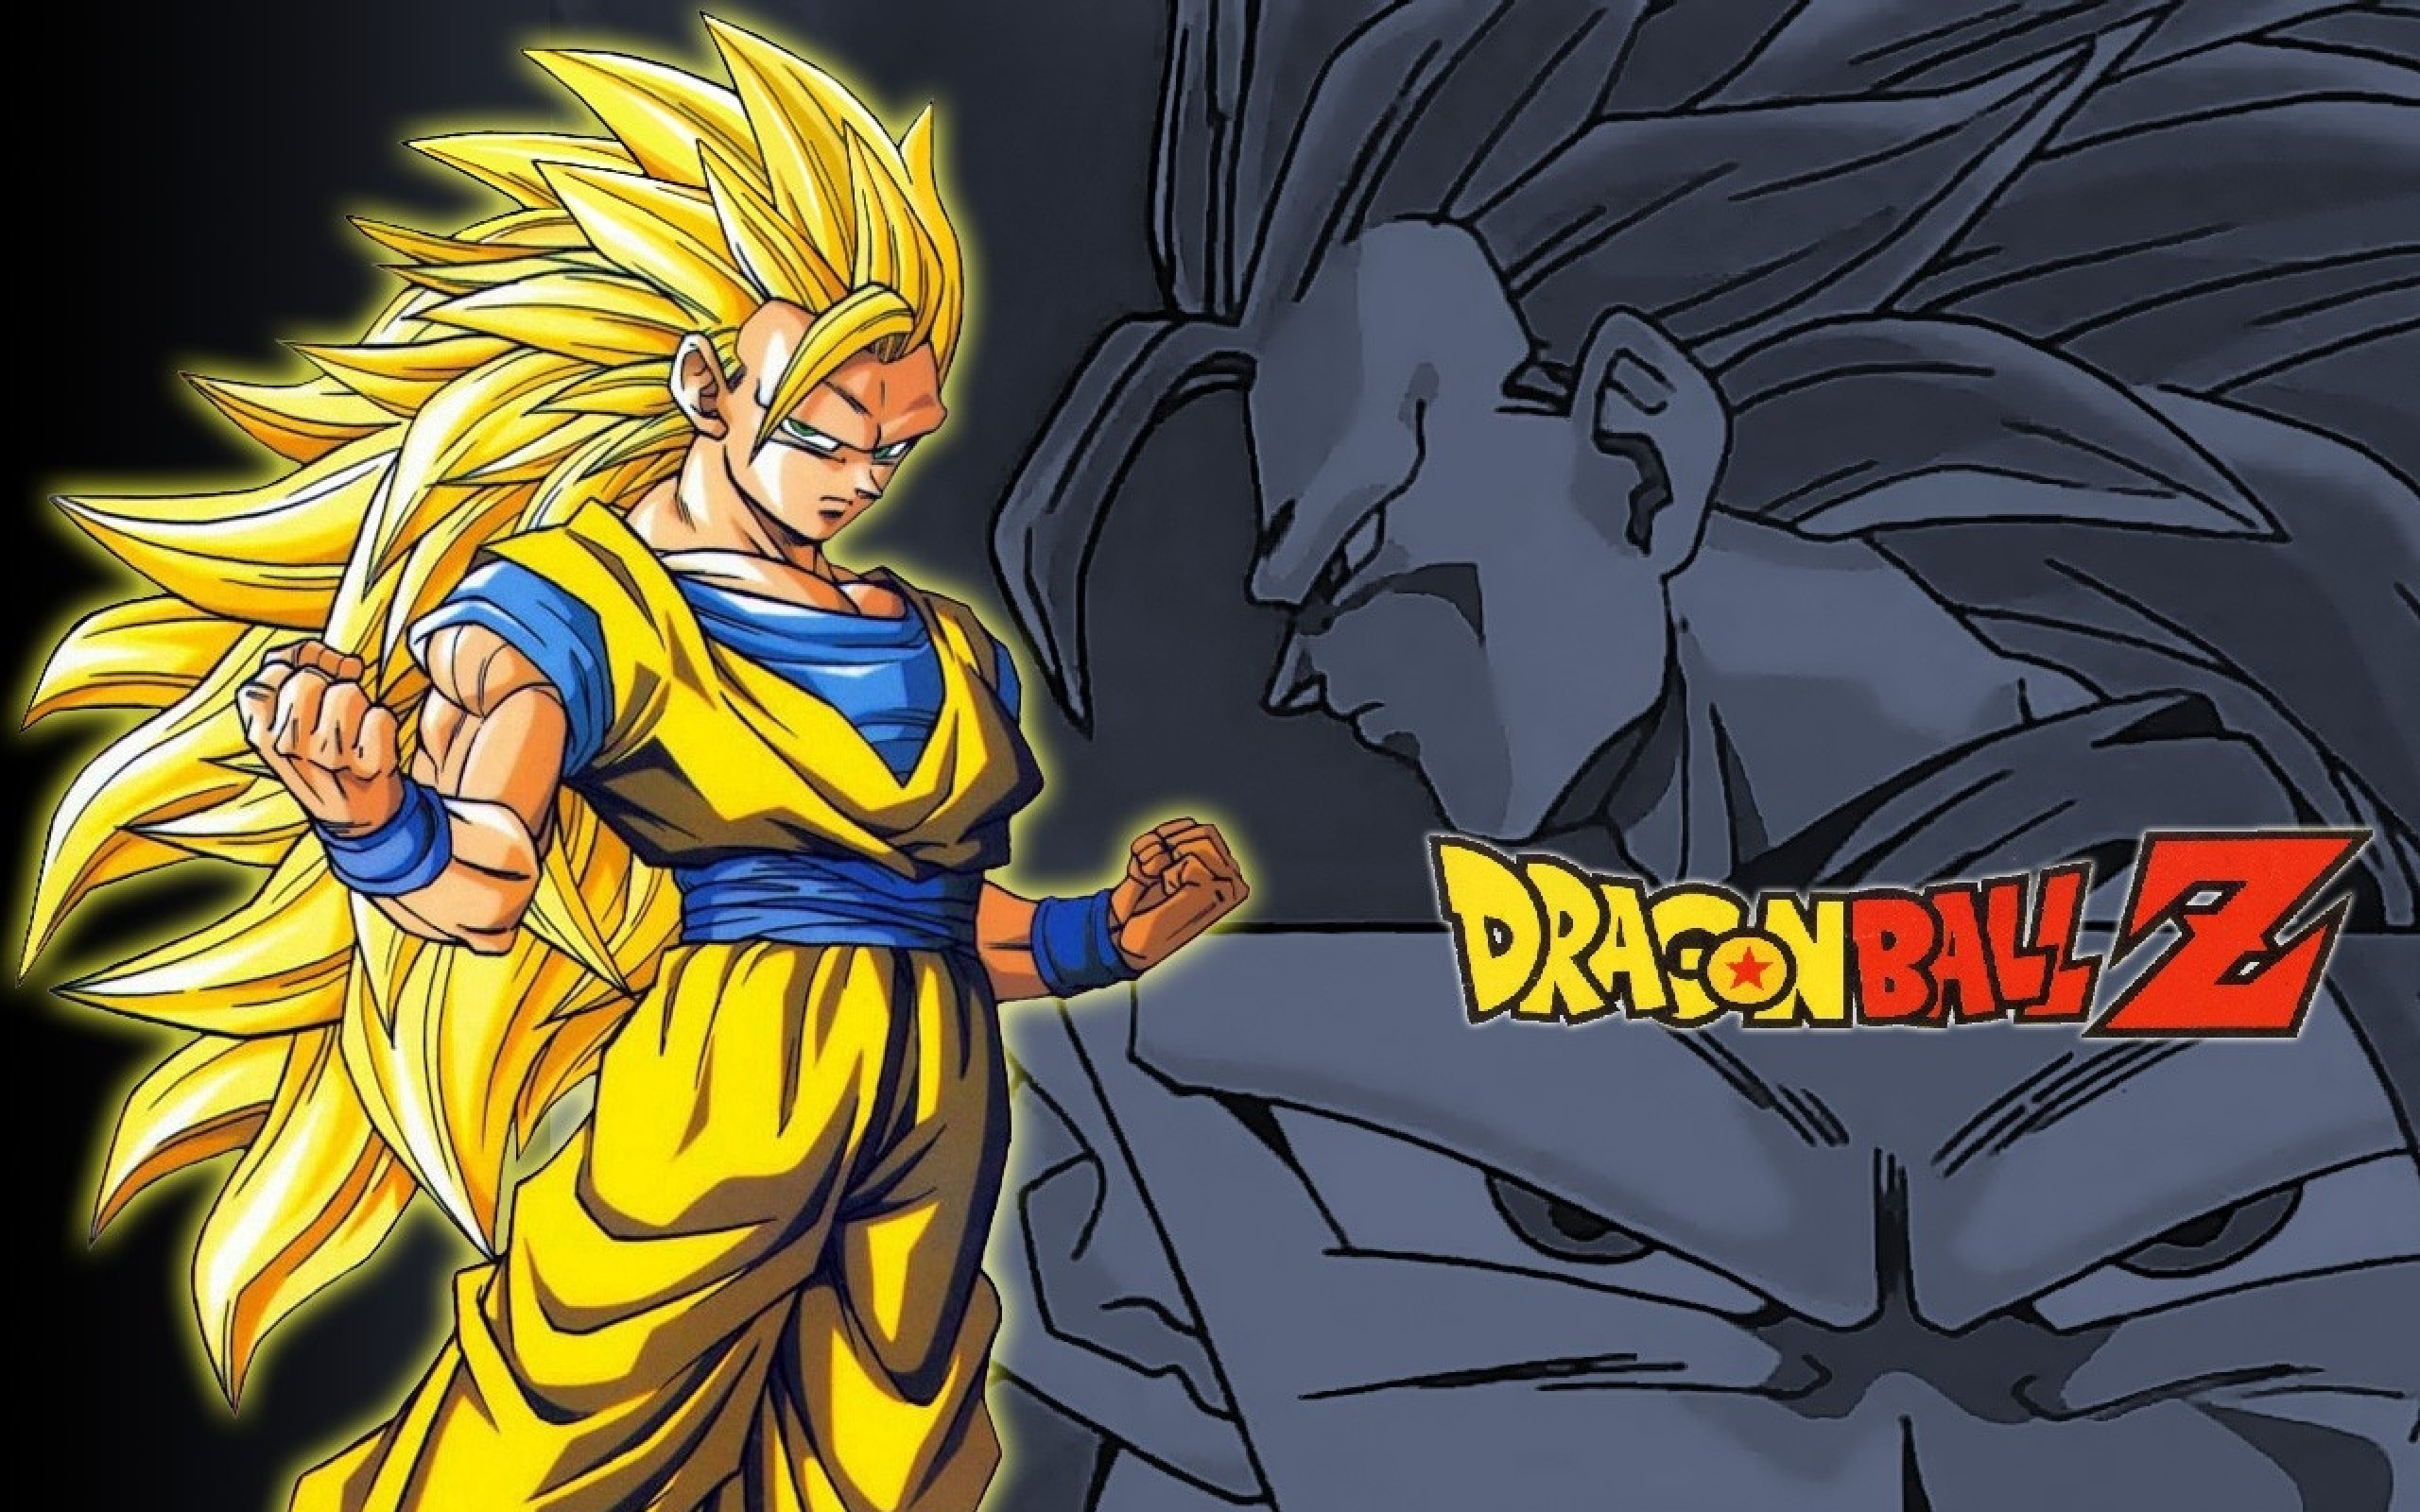 Smart Girl Wallpaper Download Dragon Ball Z Hd Wallpapers 69 Images